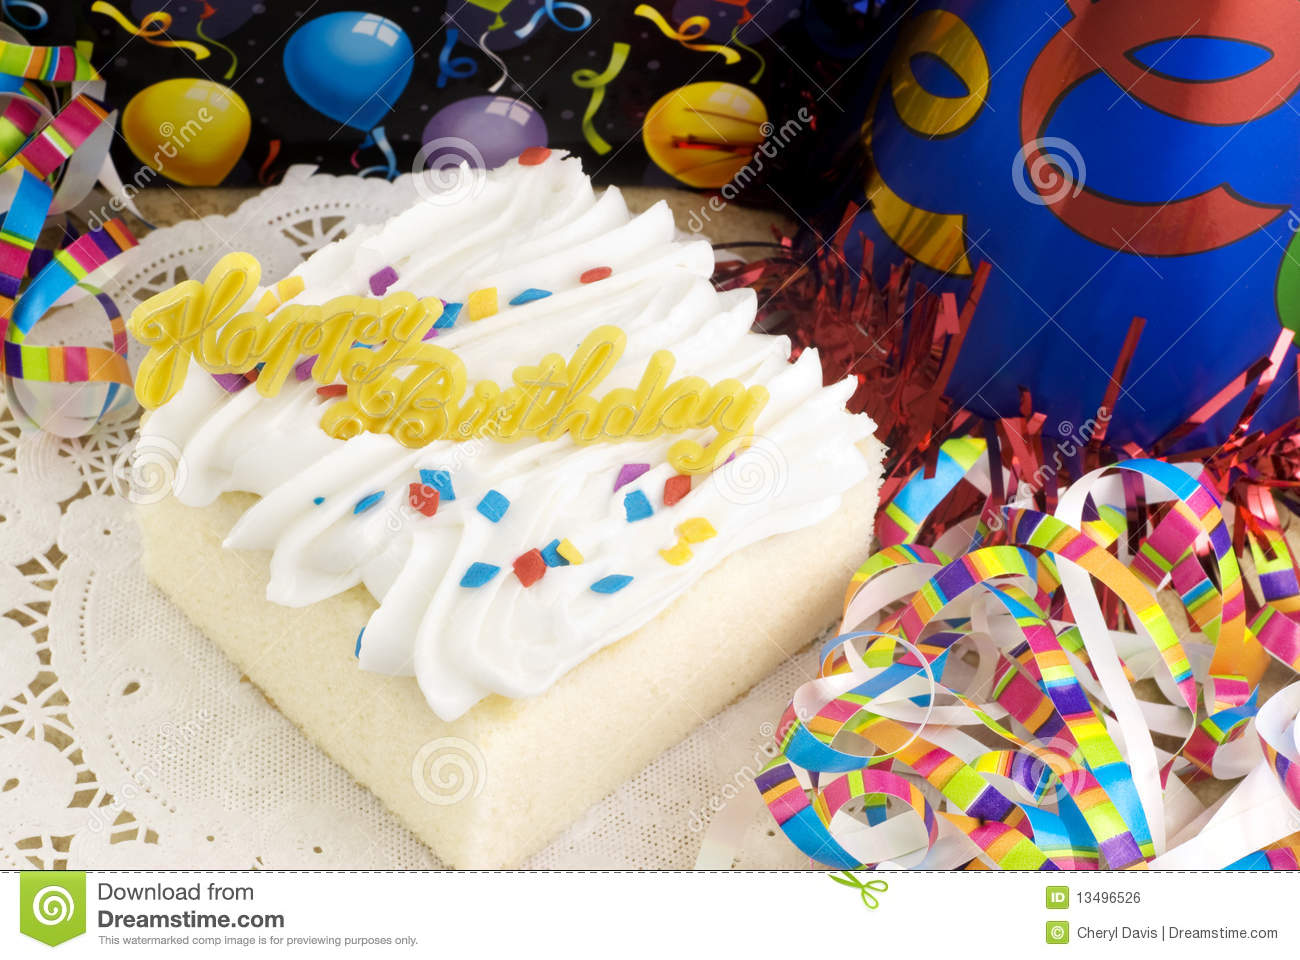 Phenomenal Top 100 Happy Birthday Cake Images 2017 Pictures Wishes Photos Funny Birthday Cards Online Aboleapandamsfinfo